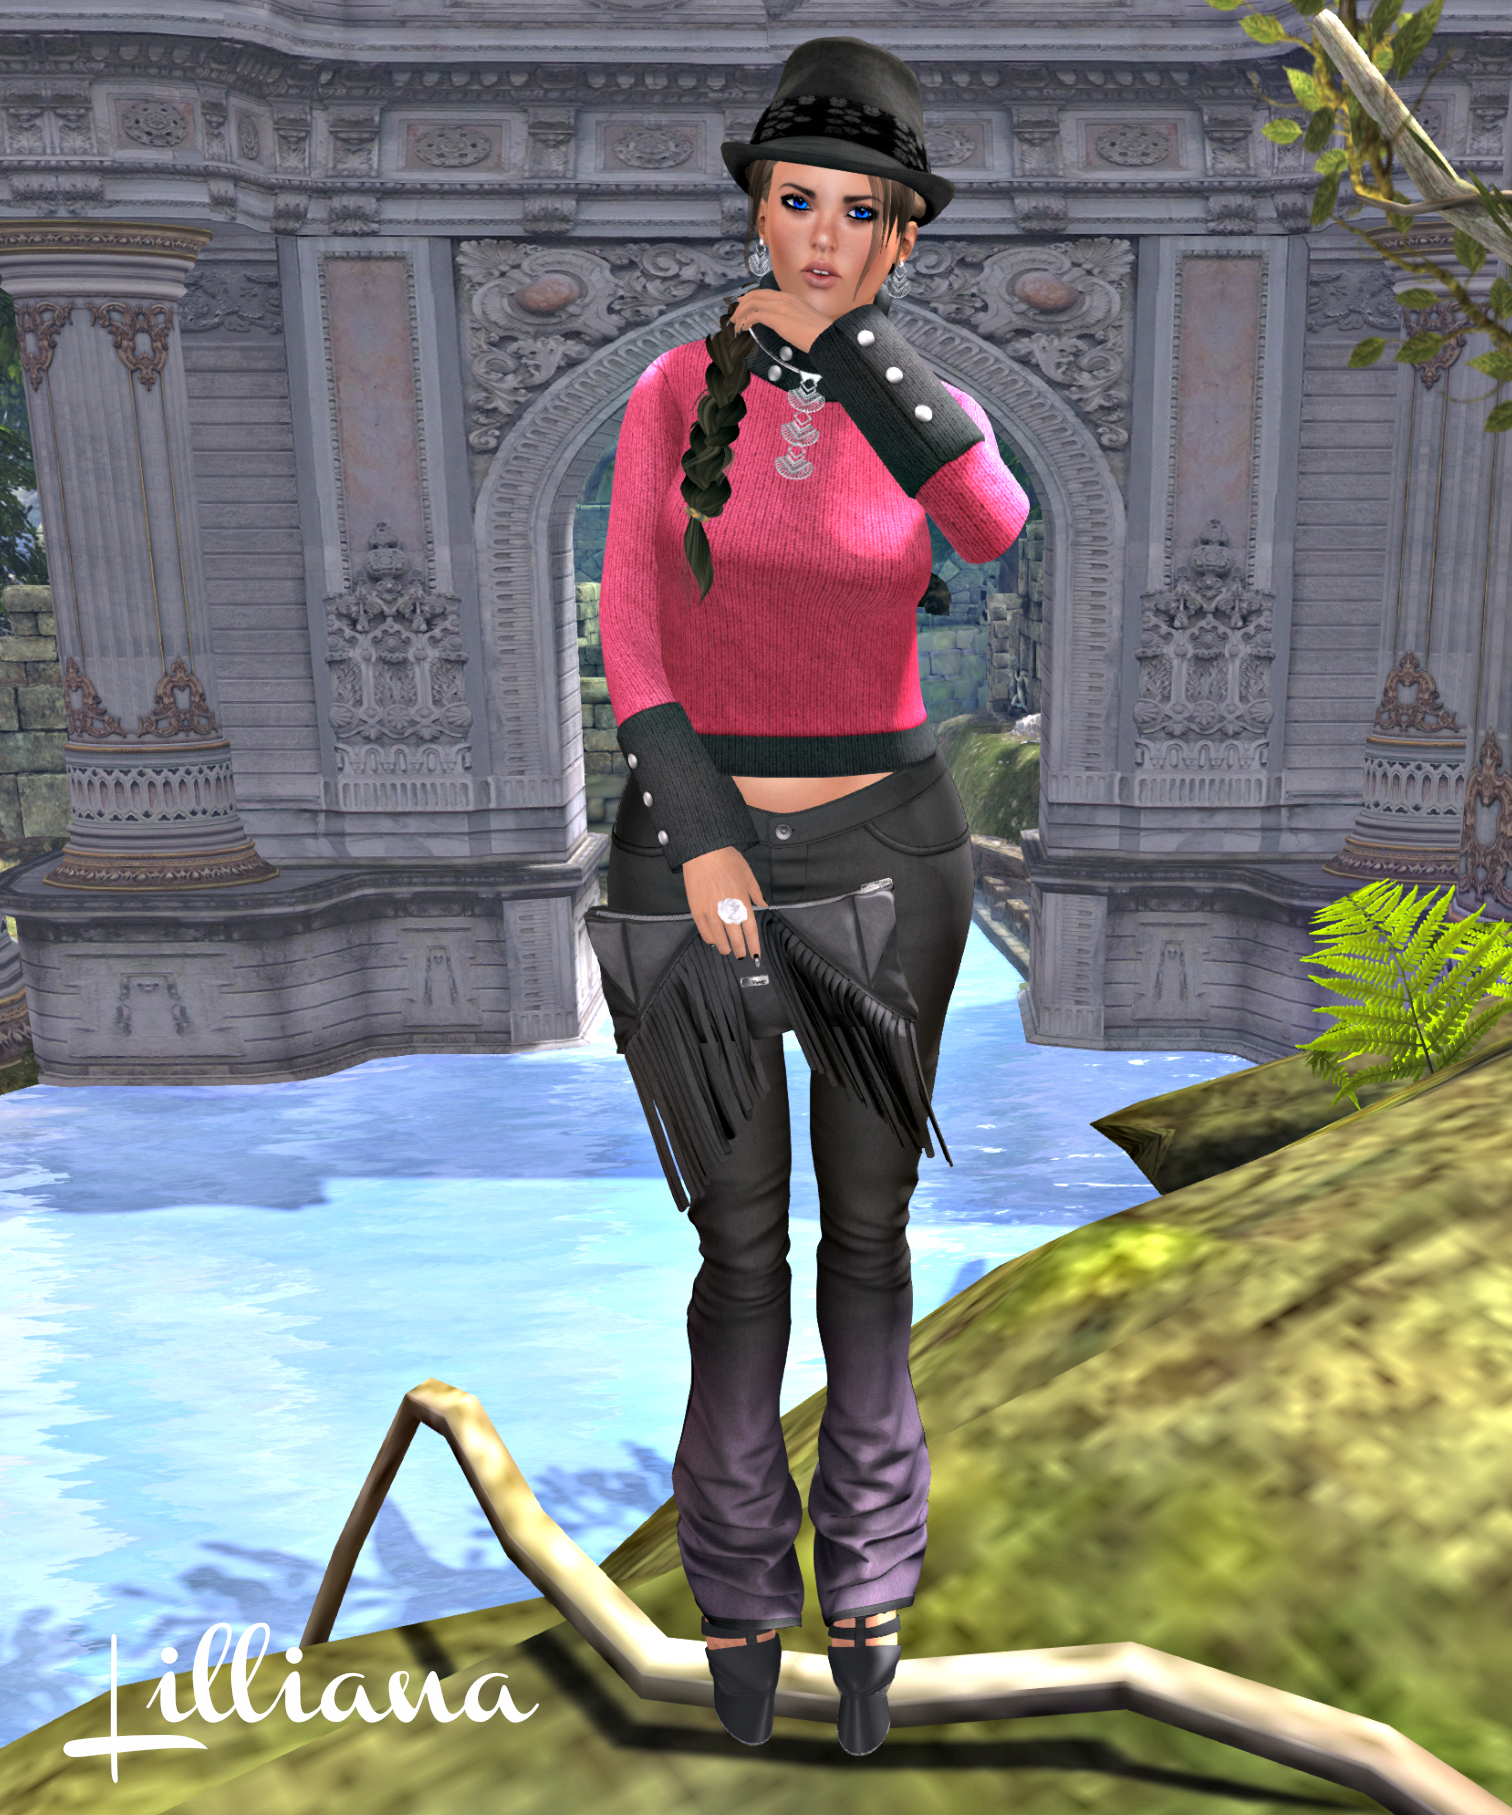 Poison Ivy, 7 Deadly, IT, Ecru, DS, Shoes, Clutch, IOS 4R_cropped